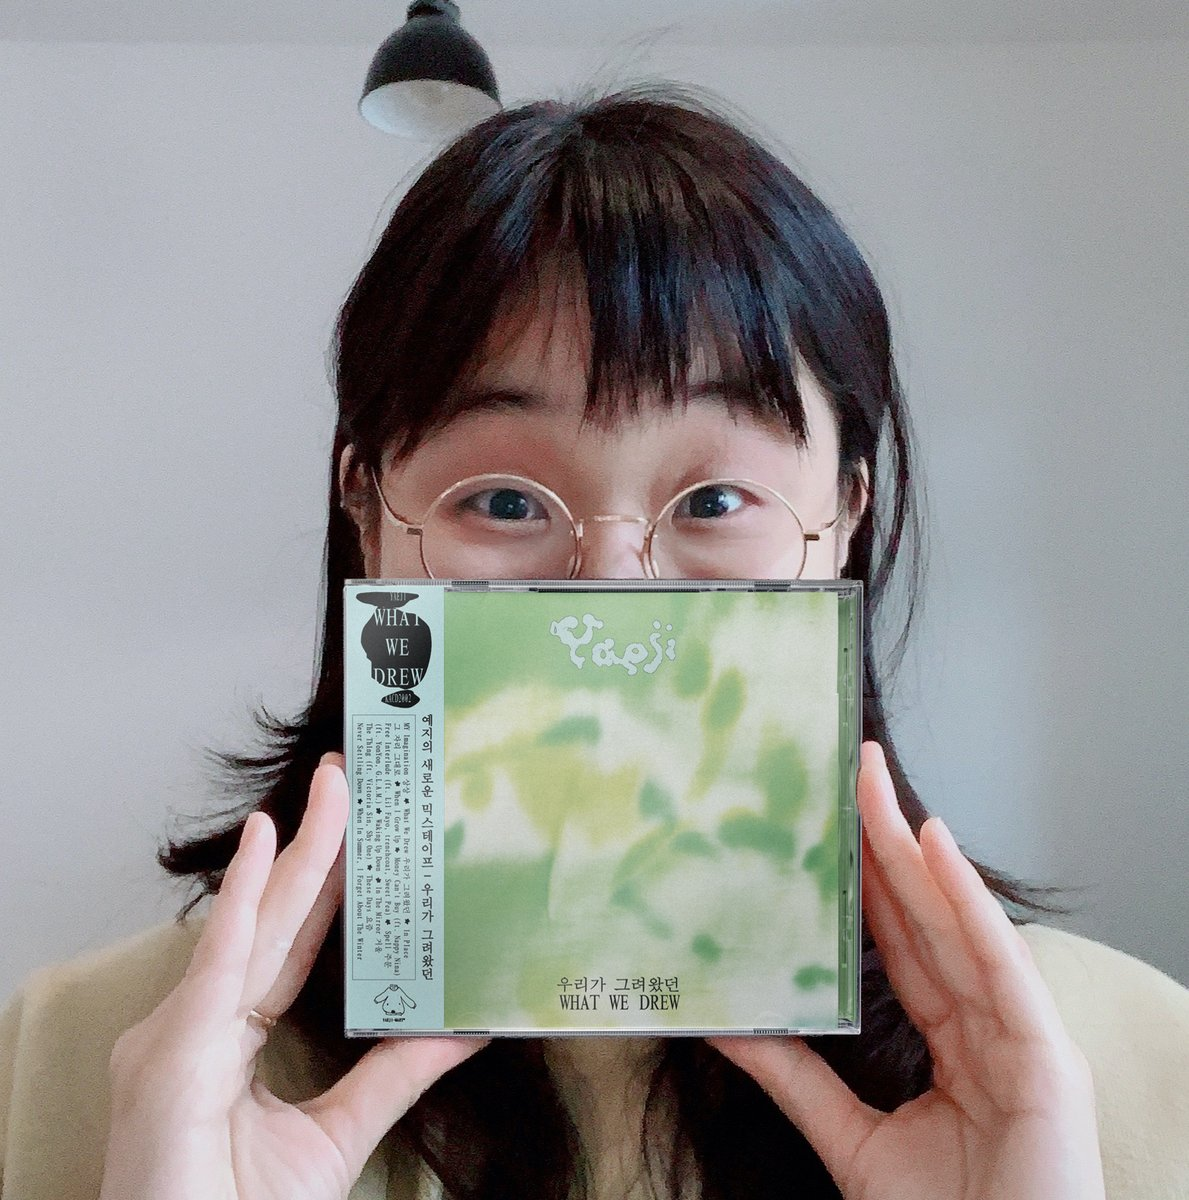 "Yaeji on Twitter: ""my new mixtape is out everywhere now  💚https://t.co/zIAP9O1pXo🧅 i'm having a live streaming drawing/doodling  partayy while we listen and chat on @youtubemusic today 12PM EDT 🍀 you can  grab"